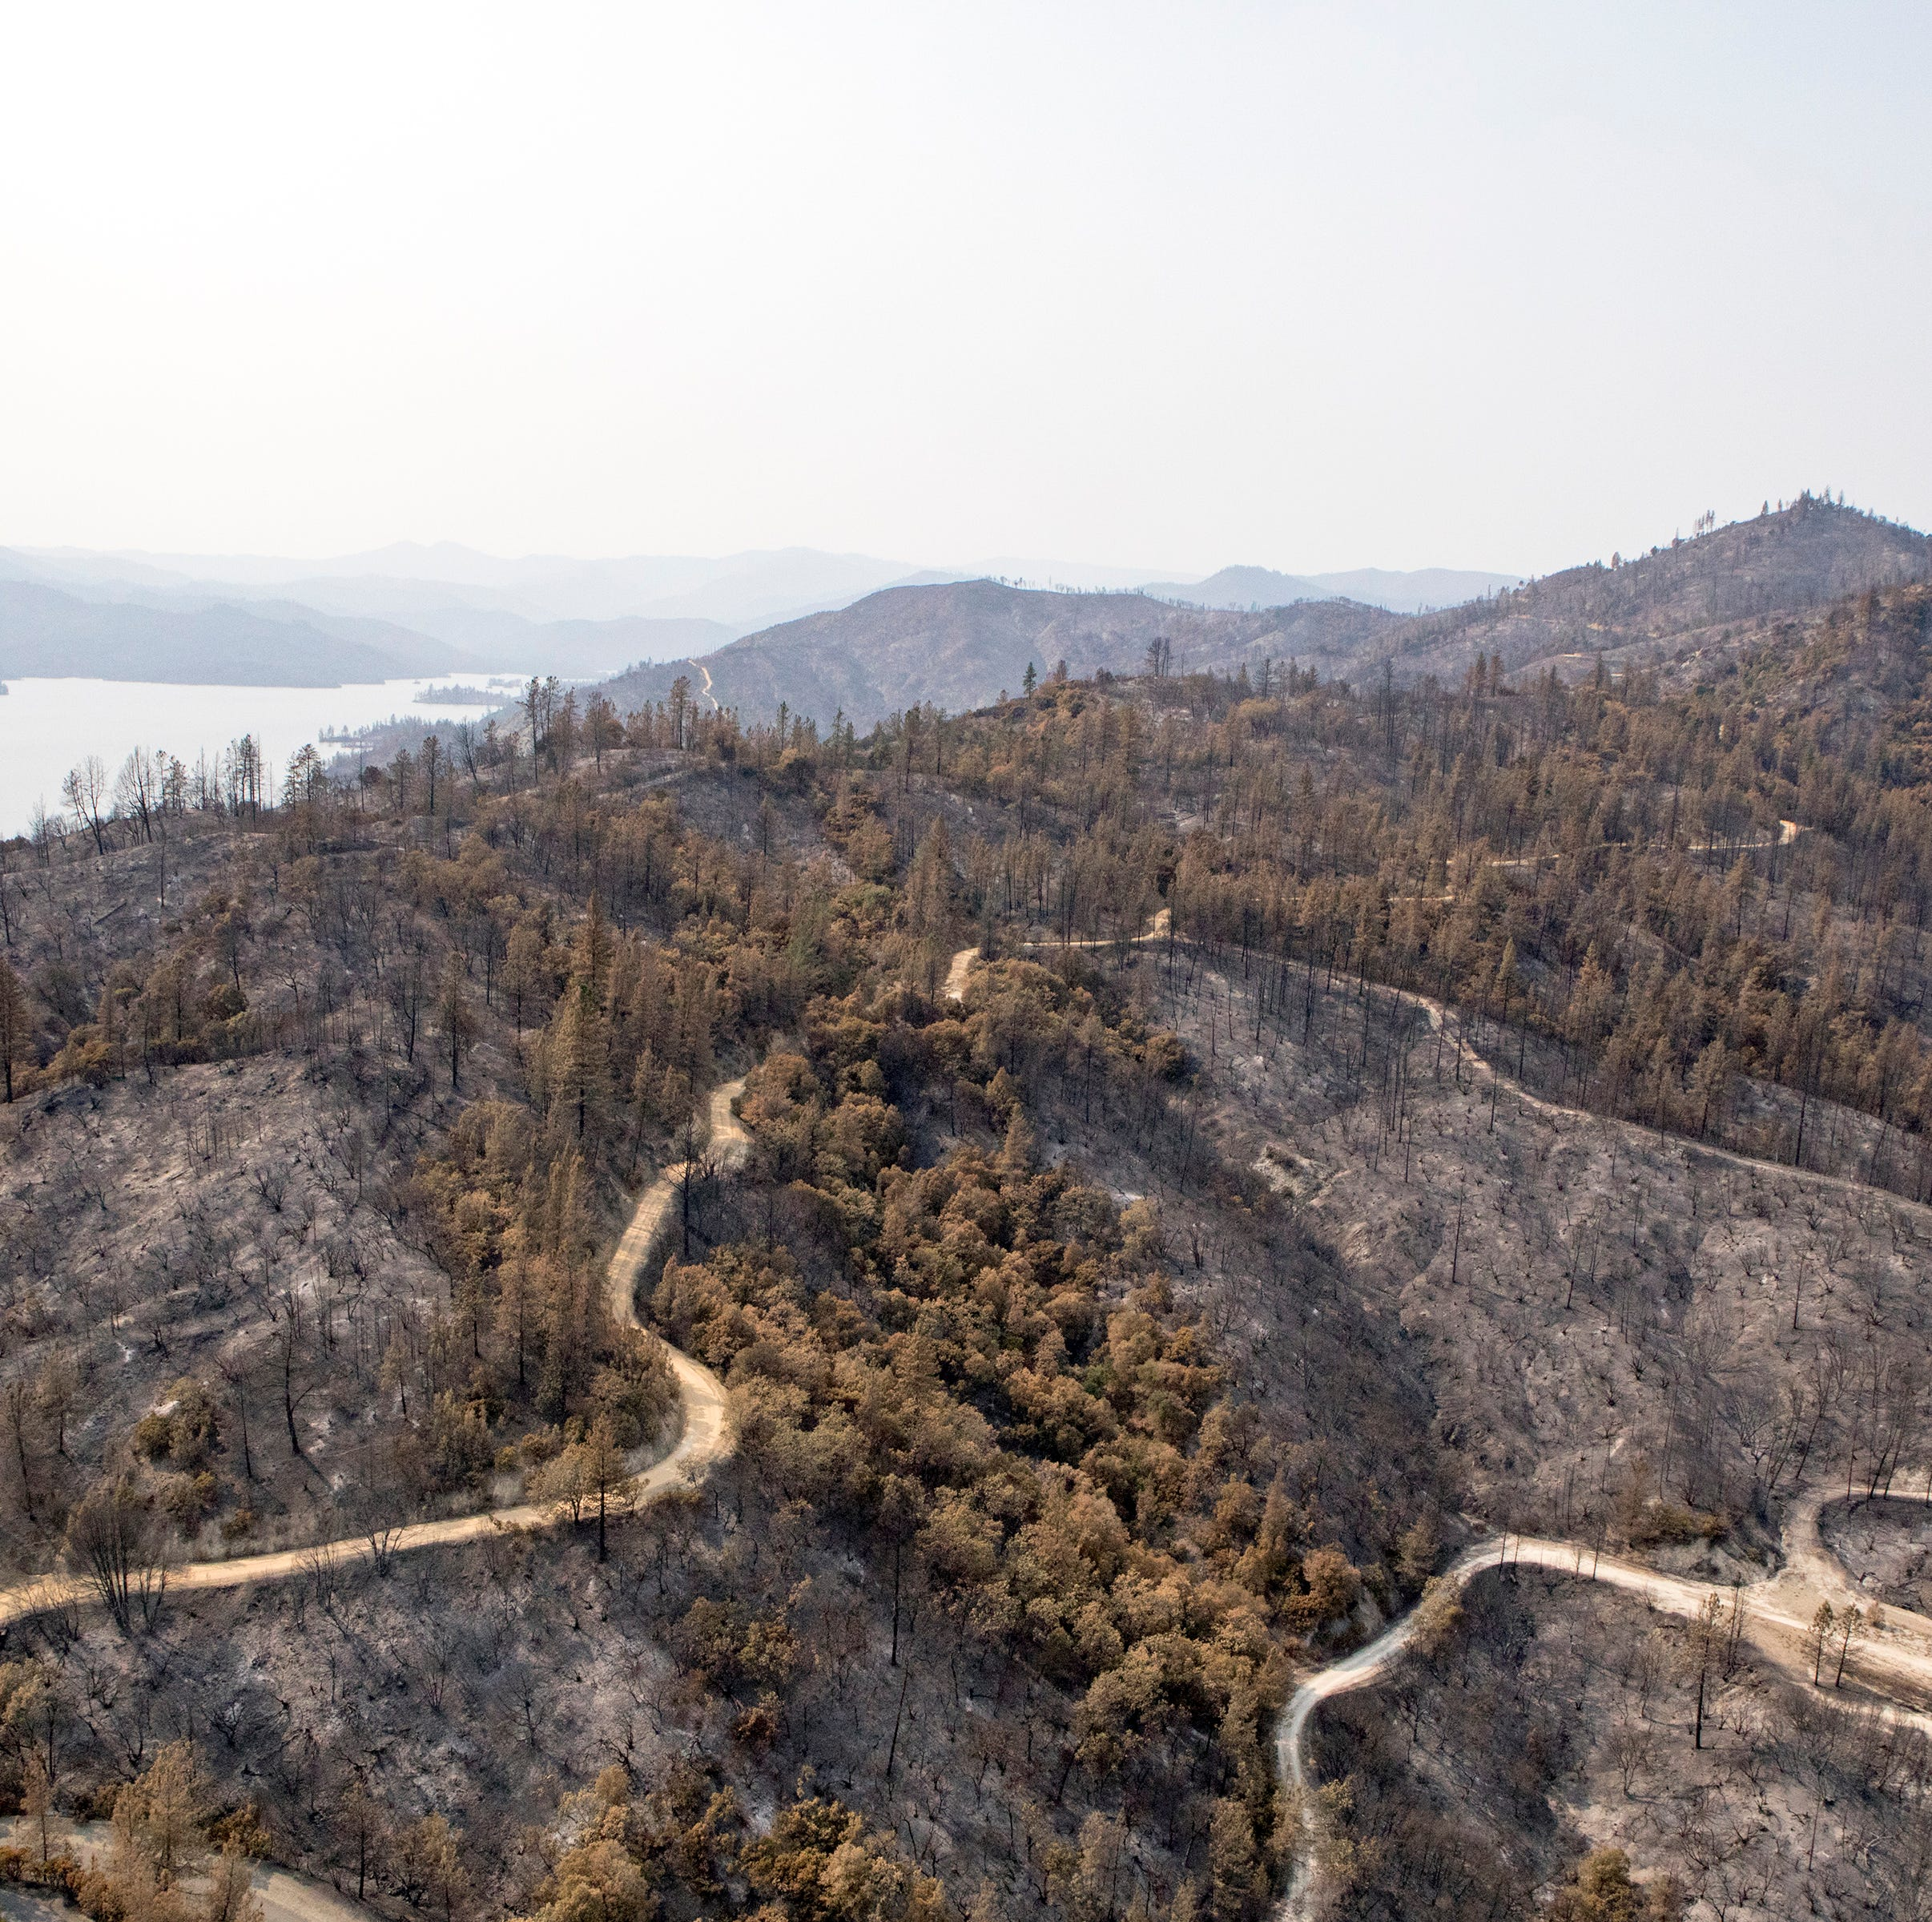 Carr Fire: National Park Service lists 19 lessons learned